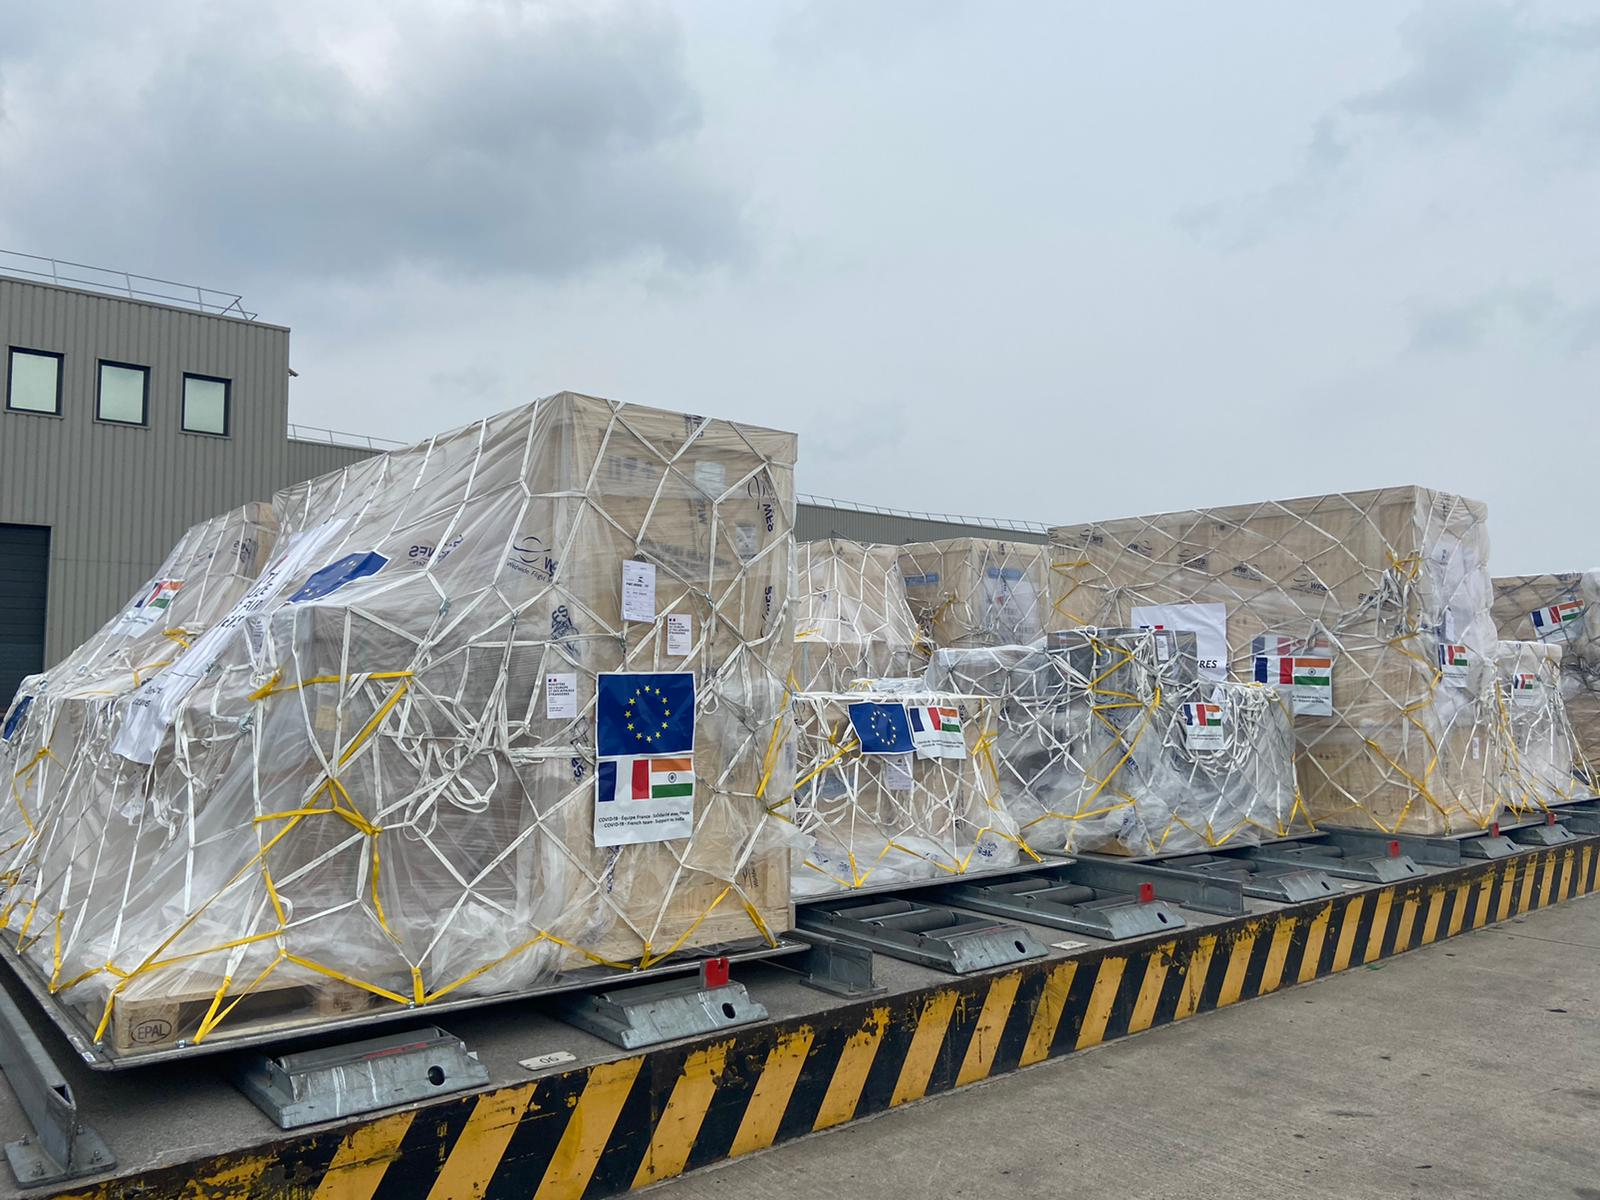 The aid shipment from France to India left from Paris on Saturday.